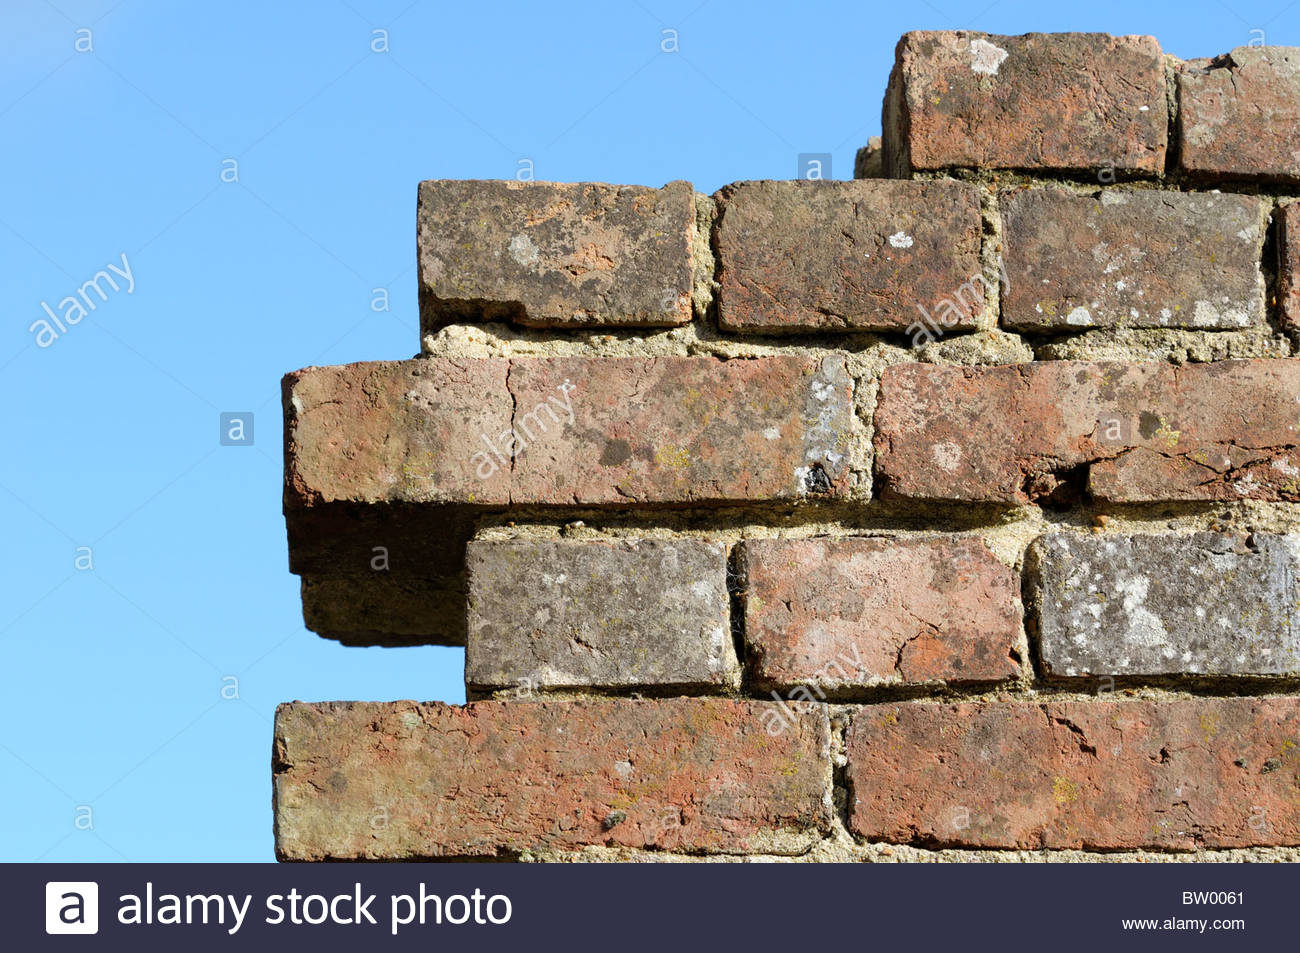 Looking skywards at an old and dilapidated brickwork wall, England UK - Stock Image